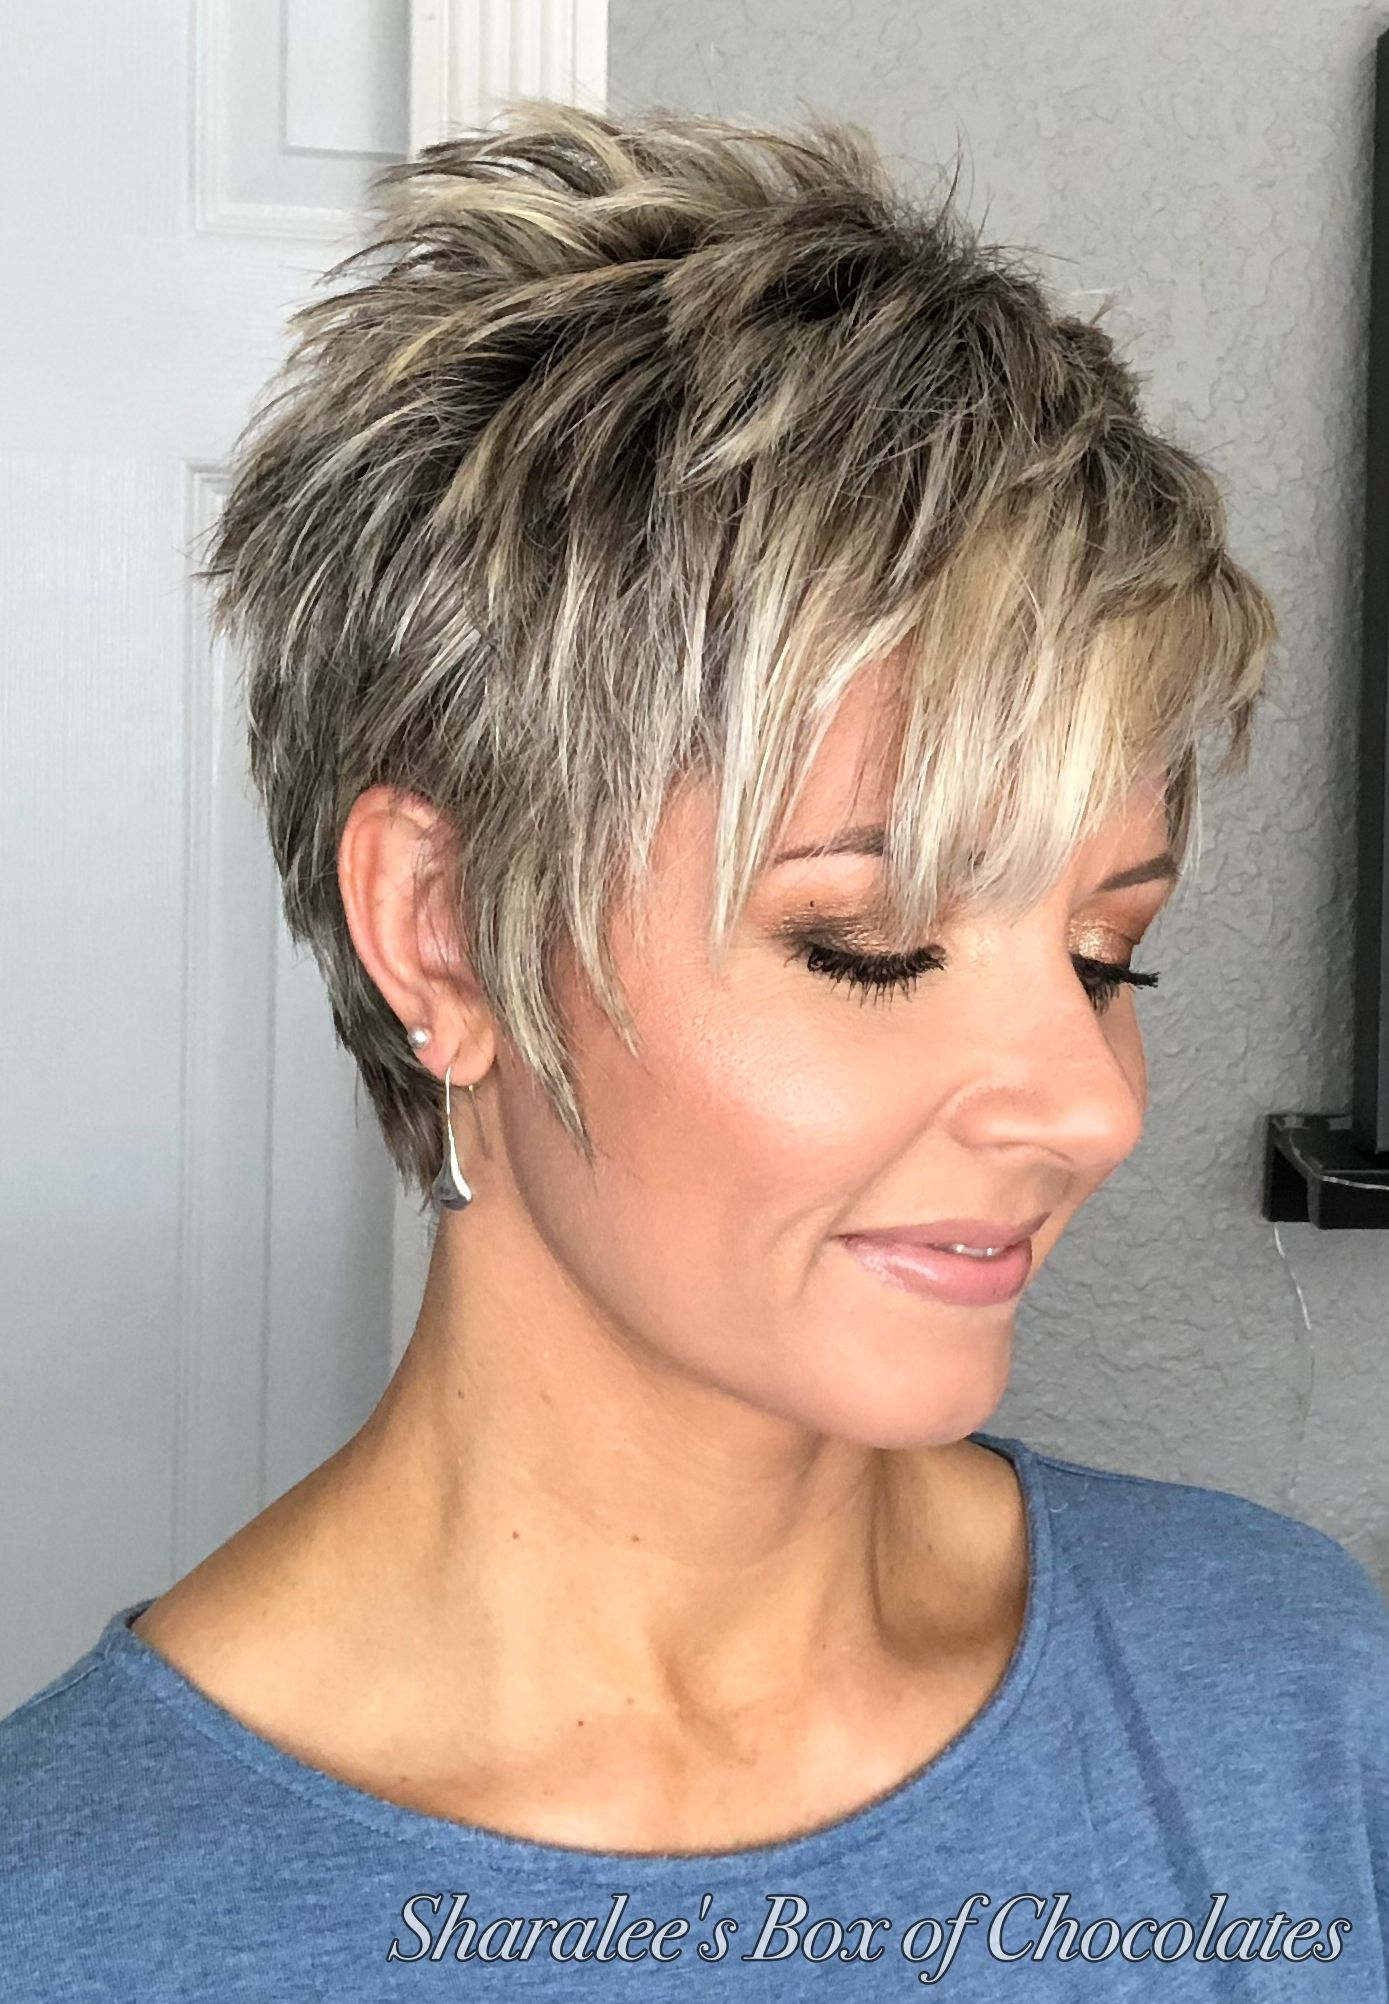 how to style a longer pixie cut - great style for mature